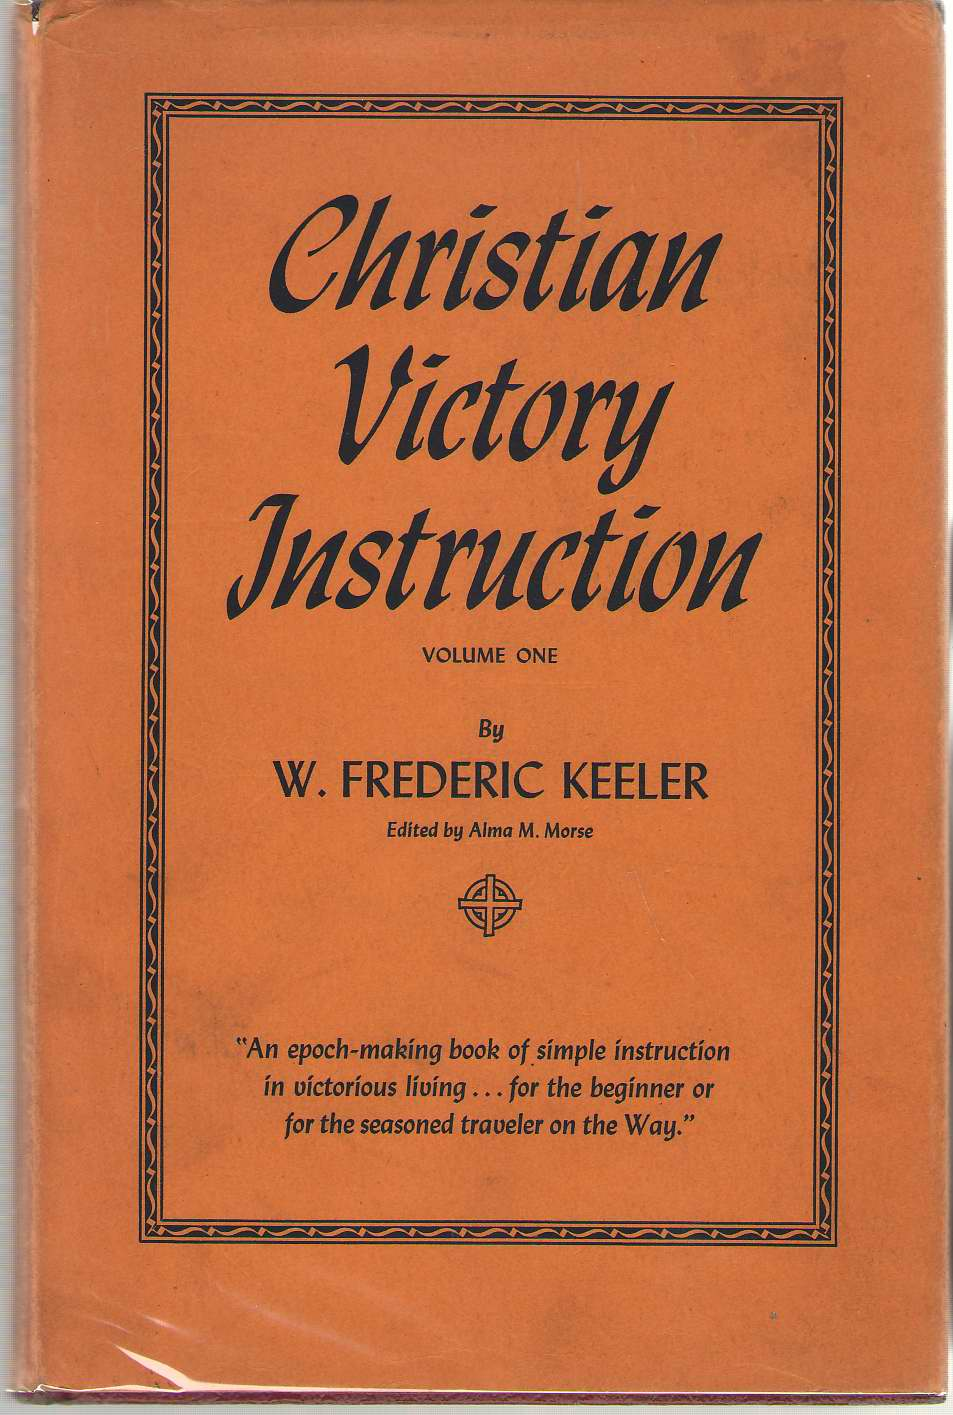 Image for Christian Victory Instruction, V.1